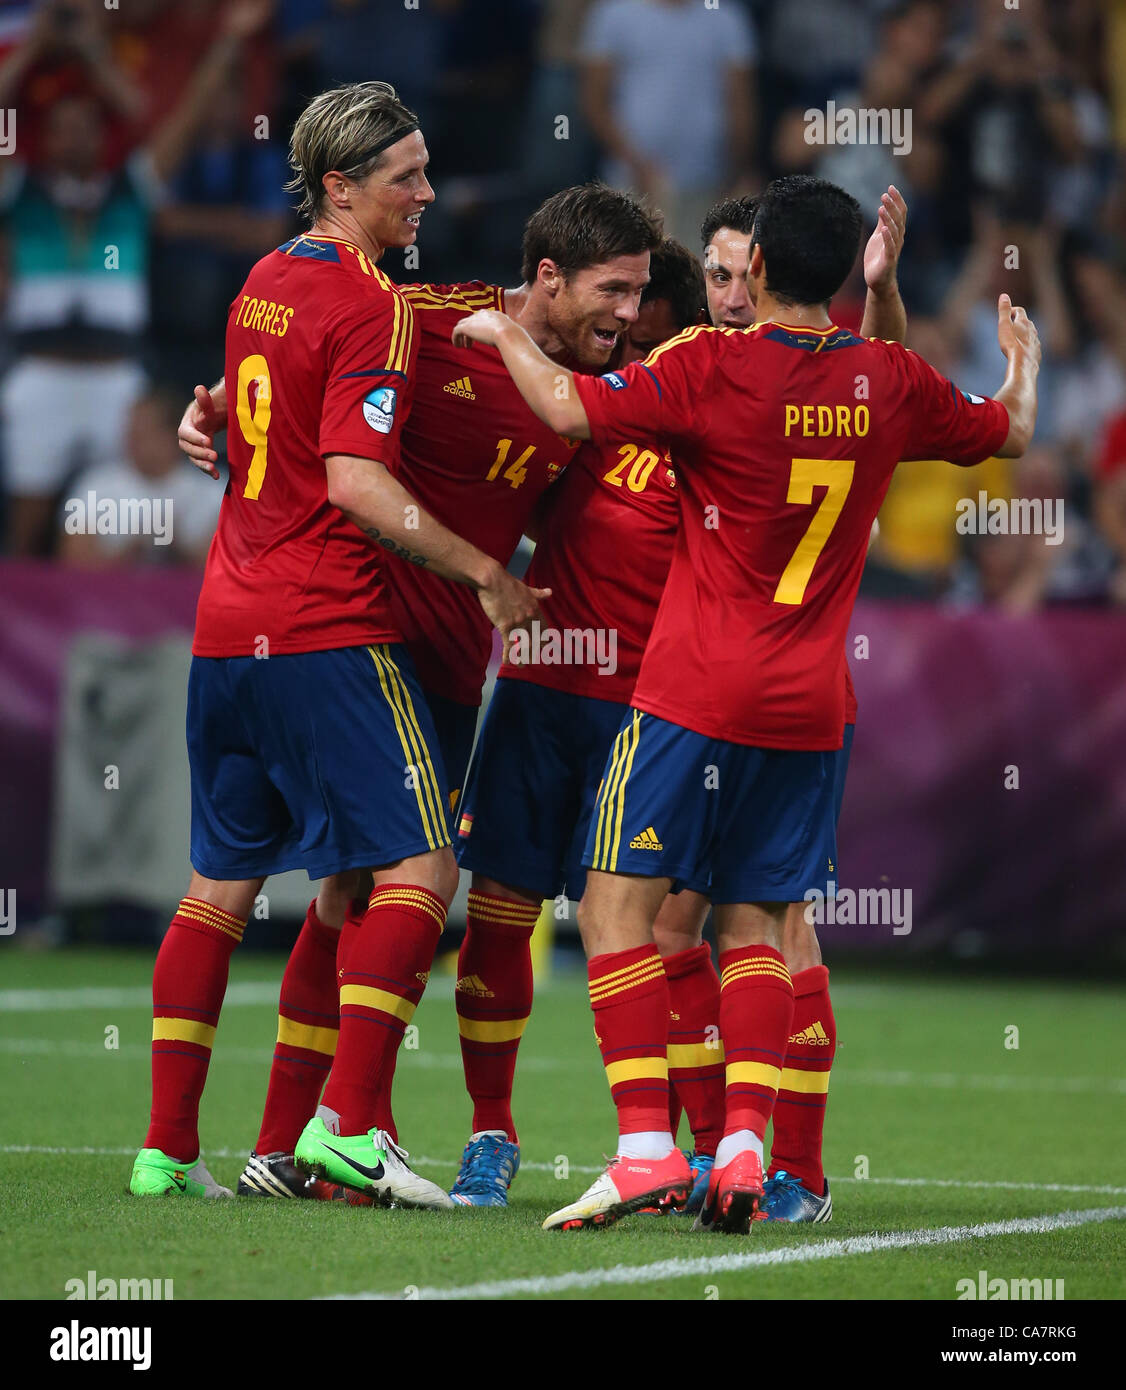 XABI ALONSO & TEAM MATES CELEB SPAIN V FRANCE EURO 2012 DONBASS ARENA DONETSK UKRAINE 23 June 2012 - Stock Image